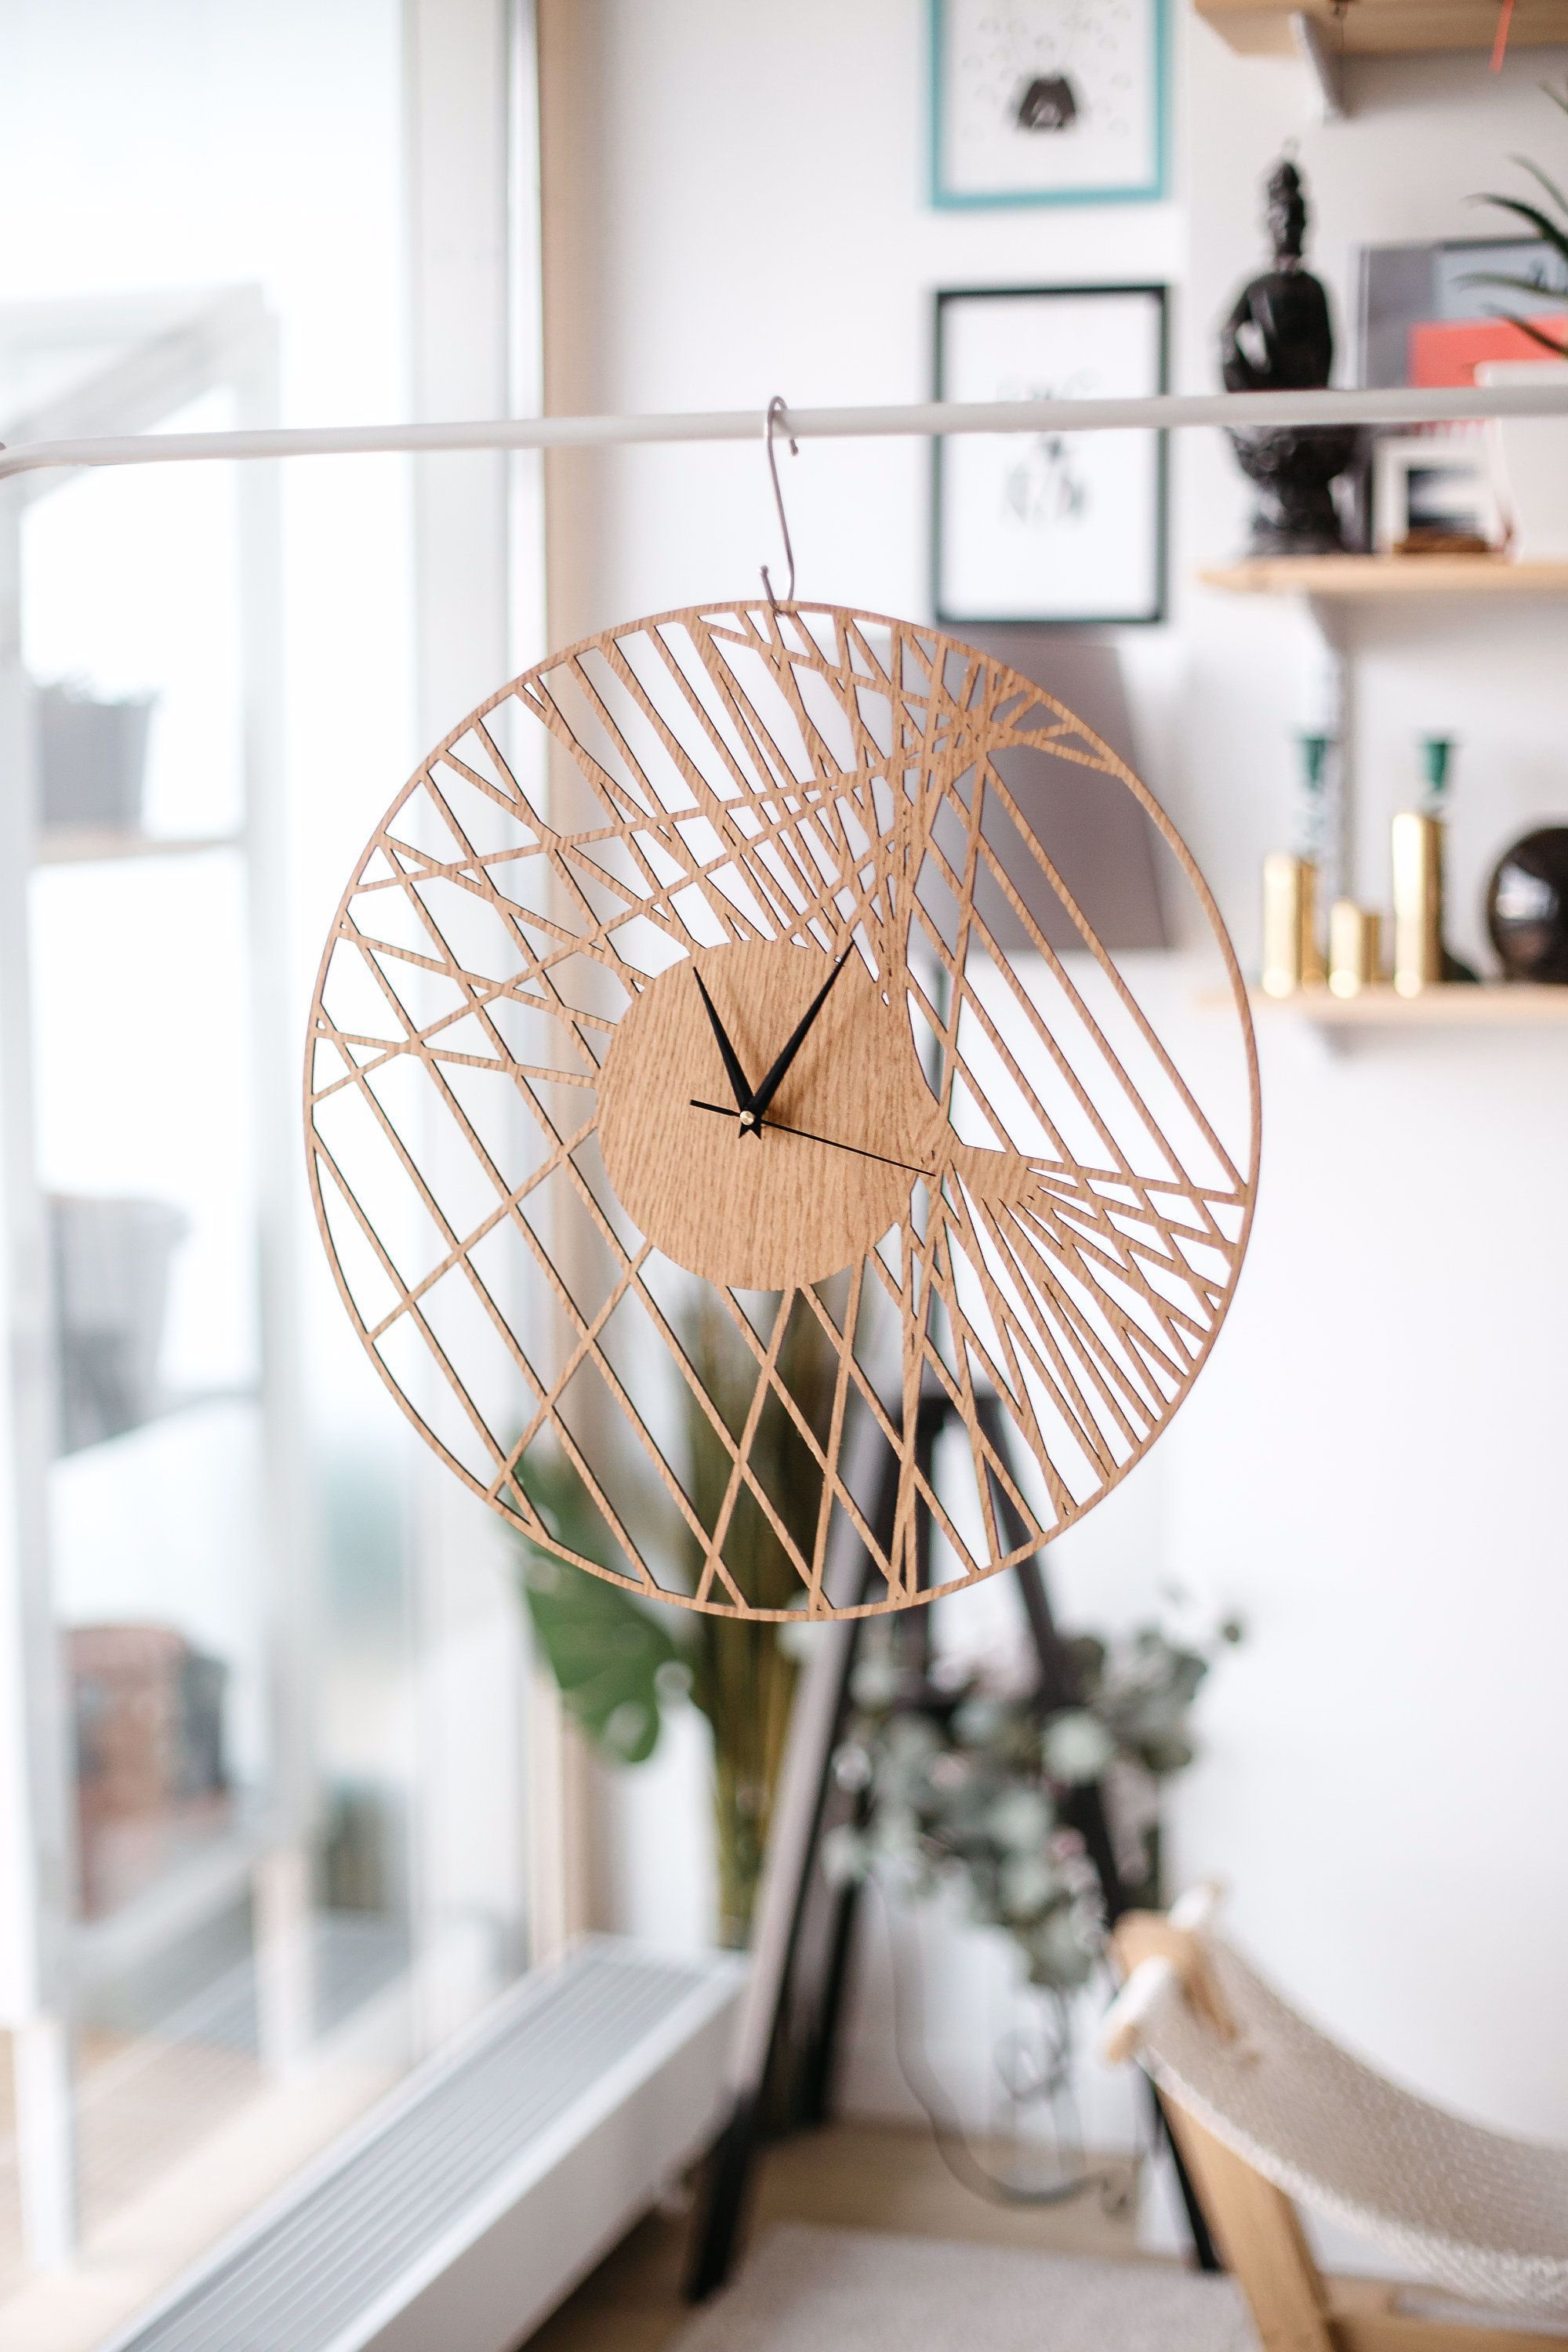 Unique Wall Clocks Large Wall Clock Bedroom Decor Modern Wall Clock Gift For Home Decor In 2020 Bedroom Wall Clock Living Room Clocks Large Wooden Wall Clock